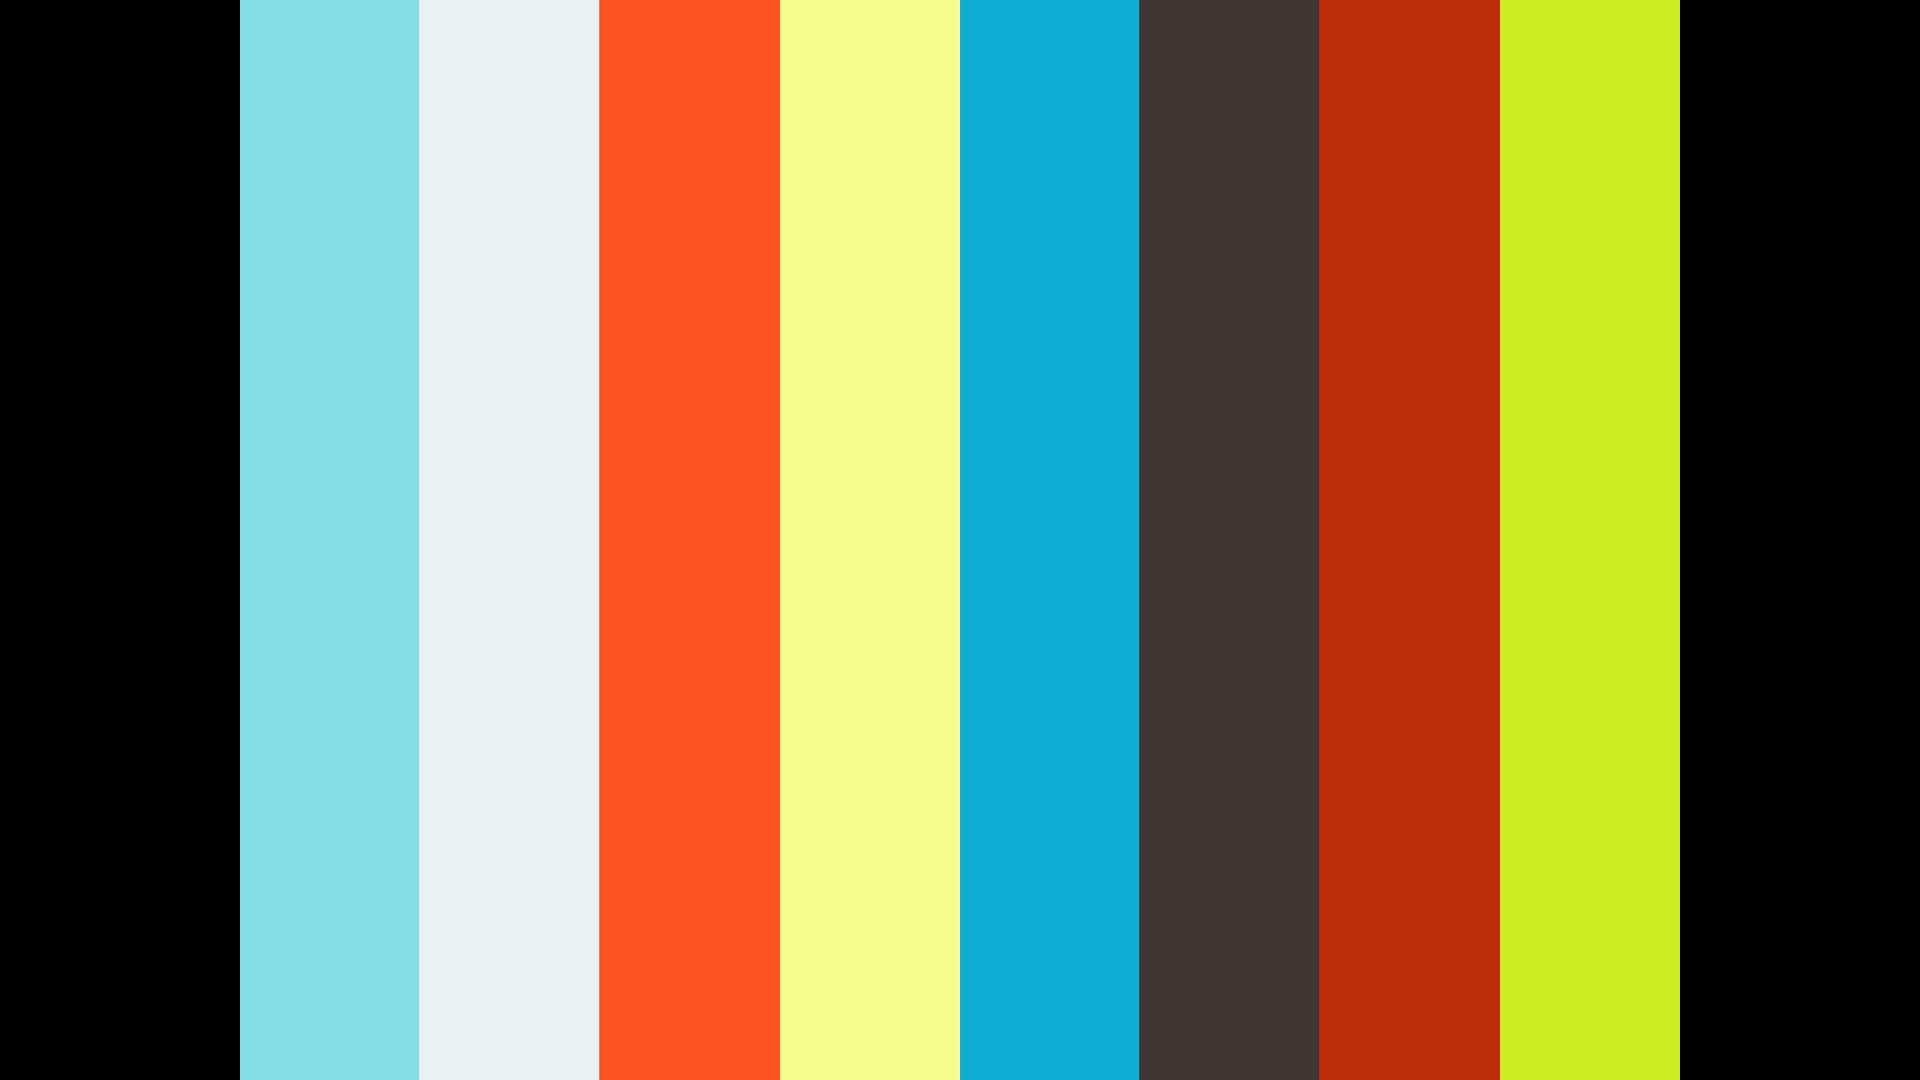 Working with the Sony FS5 and Zacuto Gratical HD EVF